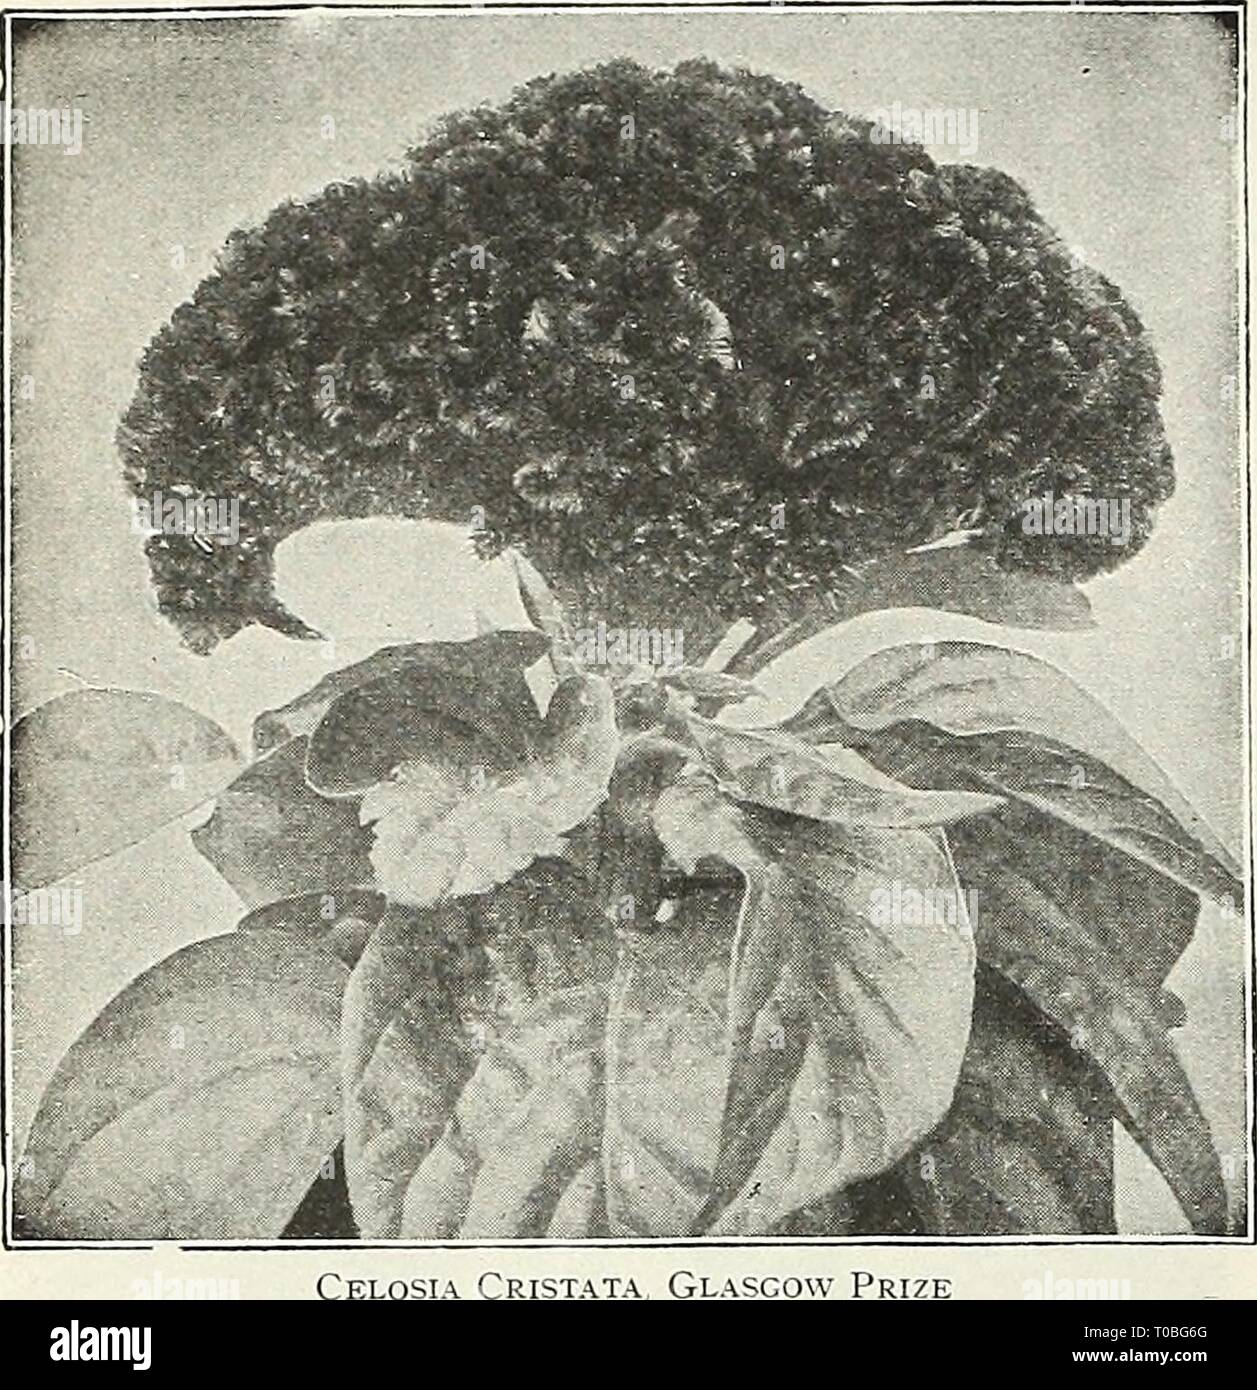 Dreer's garden book 1929 (1929) Dreer's garden book 1929 dreersgardenbook1929henr Year: 1929  76 /flEHiyAMm^ JE RELIABLE FLOWER SEEDS, mBBLmRf    Canary-bird Vine (Tropaeolum Canariense) PER PKT. 1749 A beautiful rapid growing annual climber, the charm- ing little canary-yellow blossoms bearing a fancied resemblance to a bird with its wings half expanded. The sprays of flowers are very artistic and keep when cut in good condition for a week. Per oz., 40 cts $0 10 Canna (Indian Shot) Dwarf, Large-flowering French. Unquestionably the finest bedding plants for the American climate. The seeds here - Stock Image